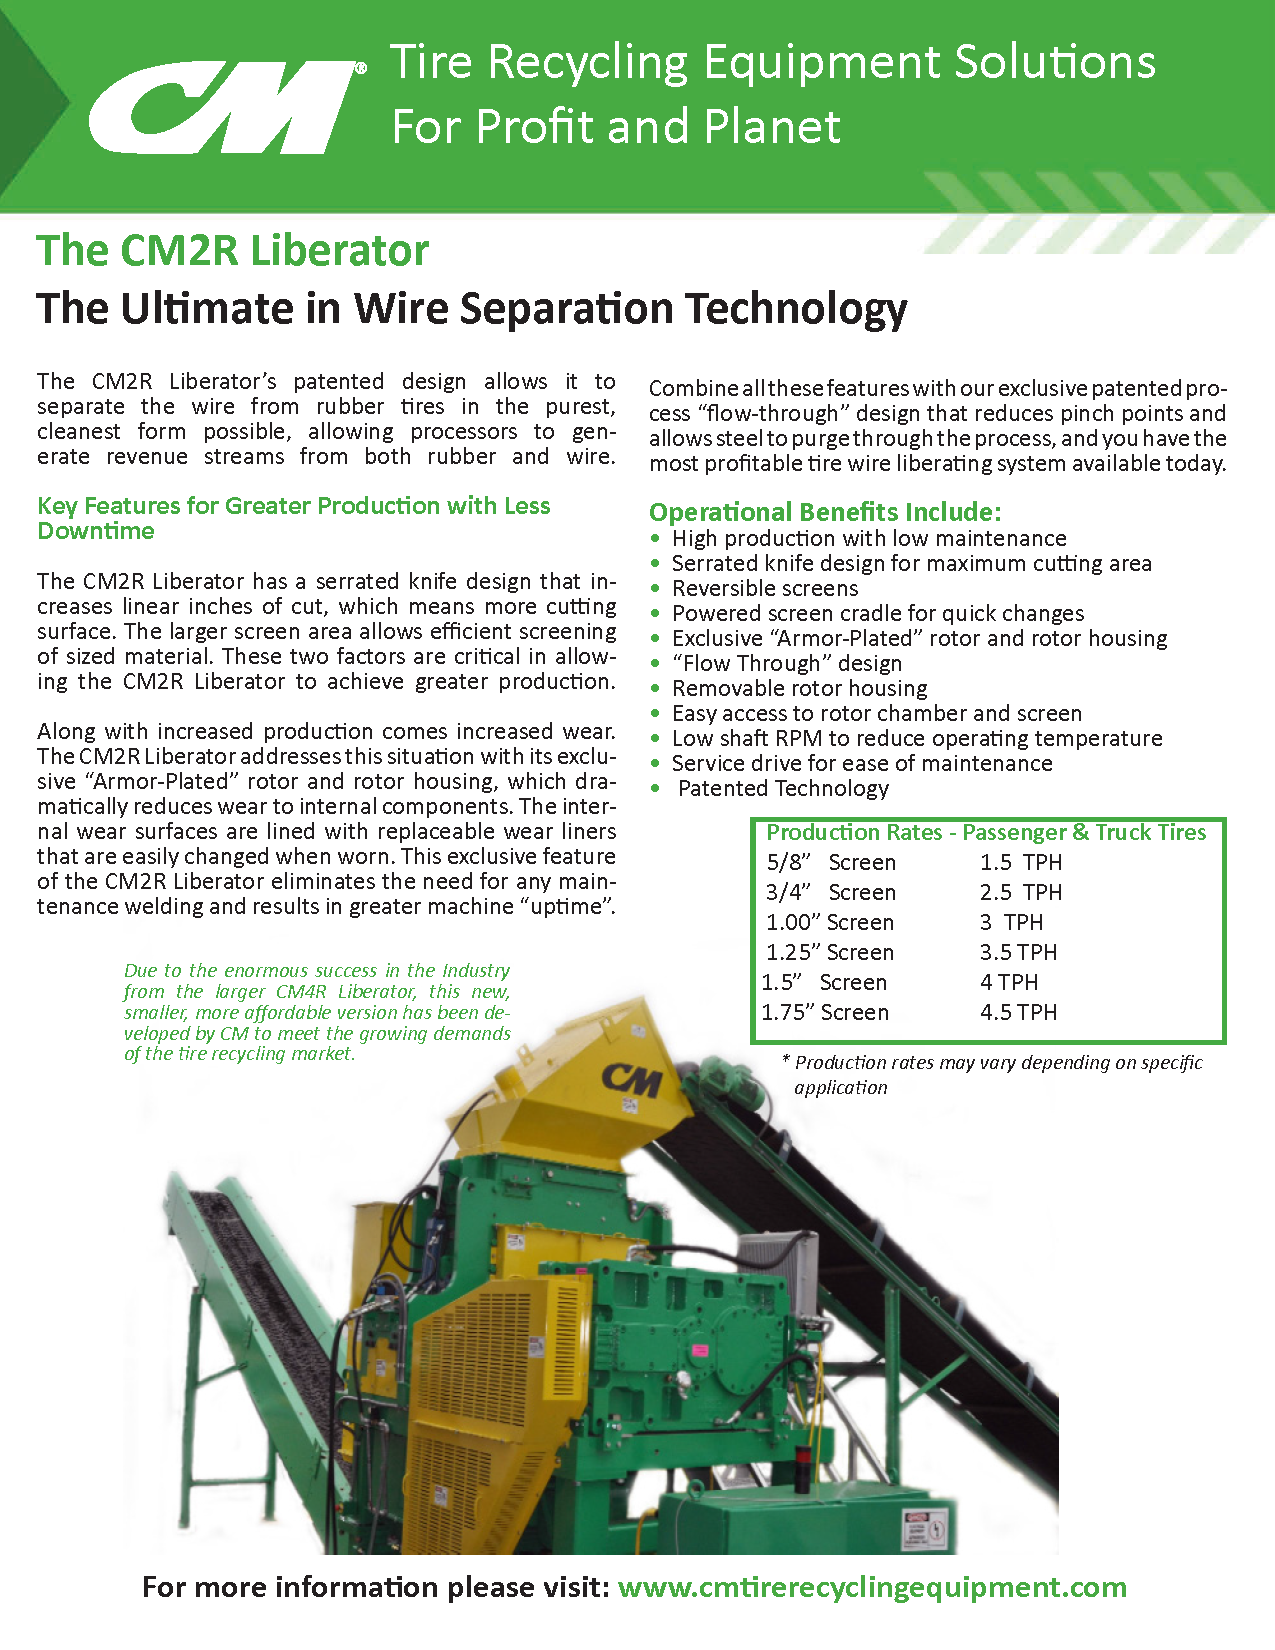 Learn more by viewing The CM2R Liberator Brochure.